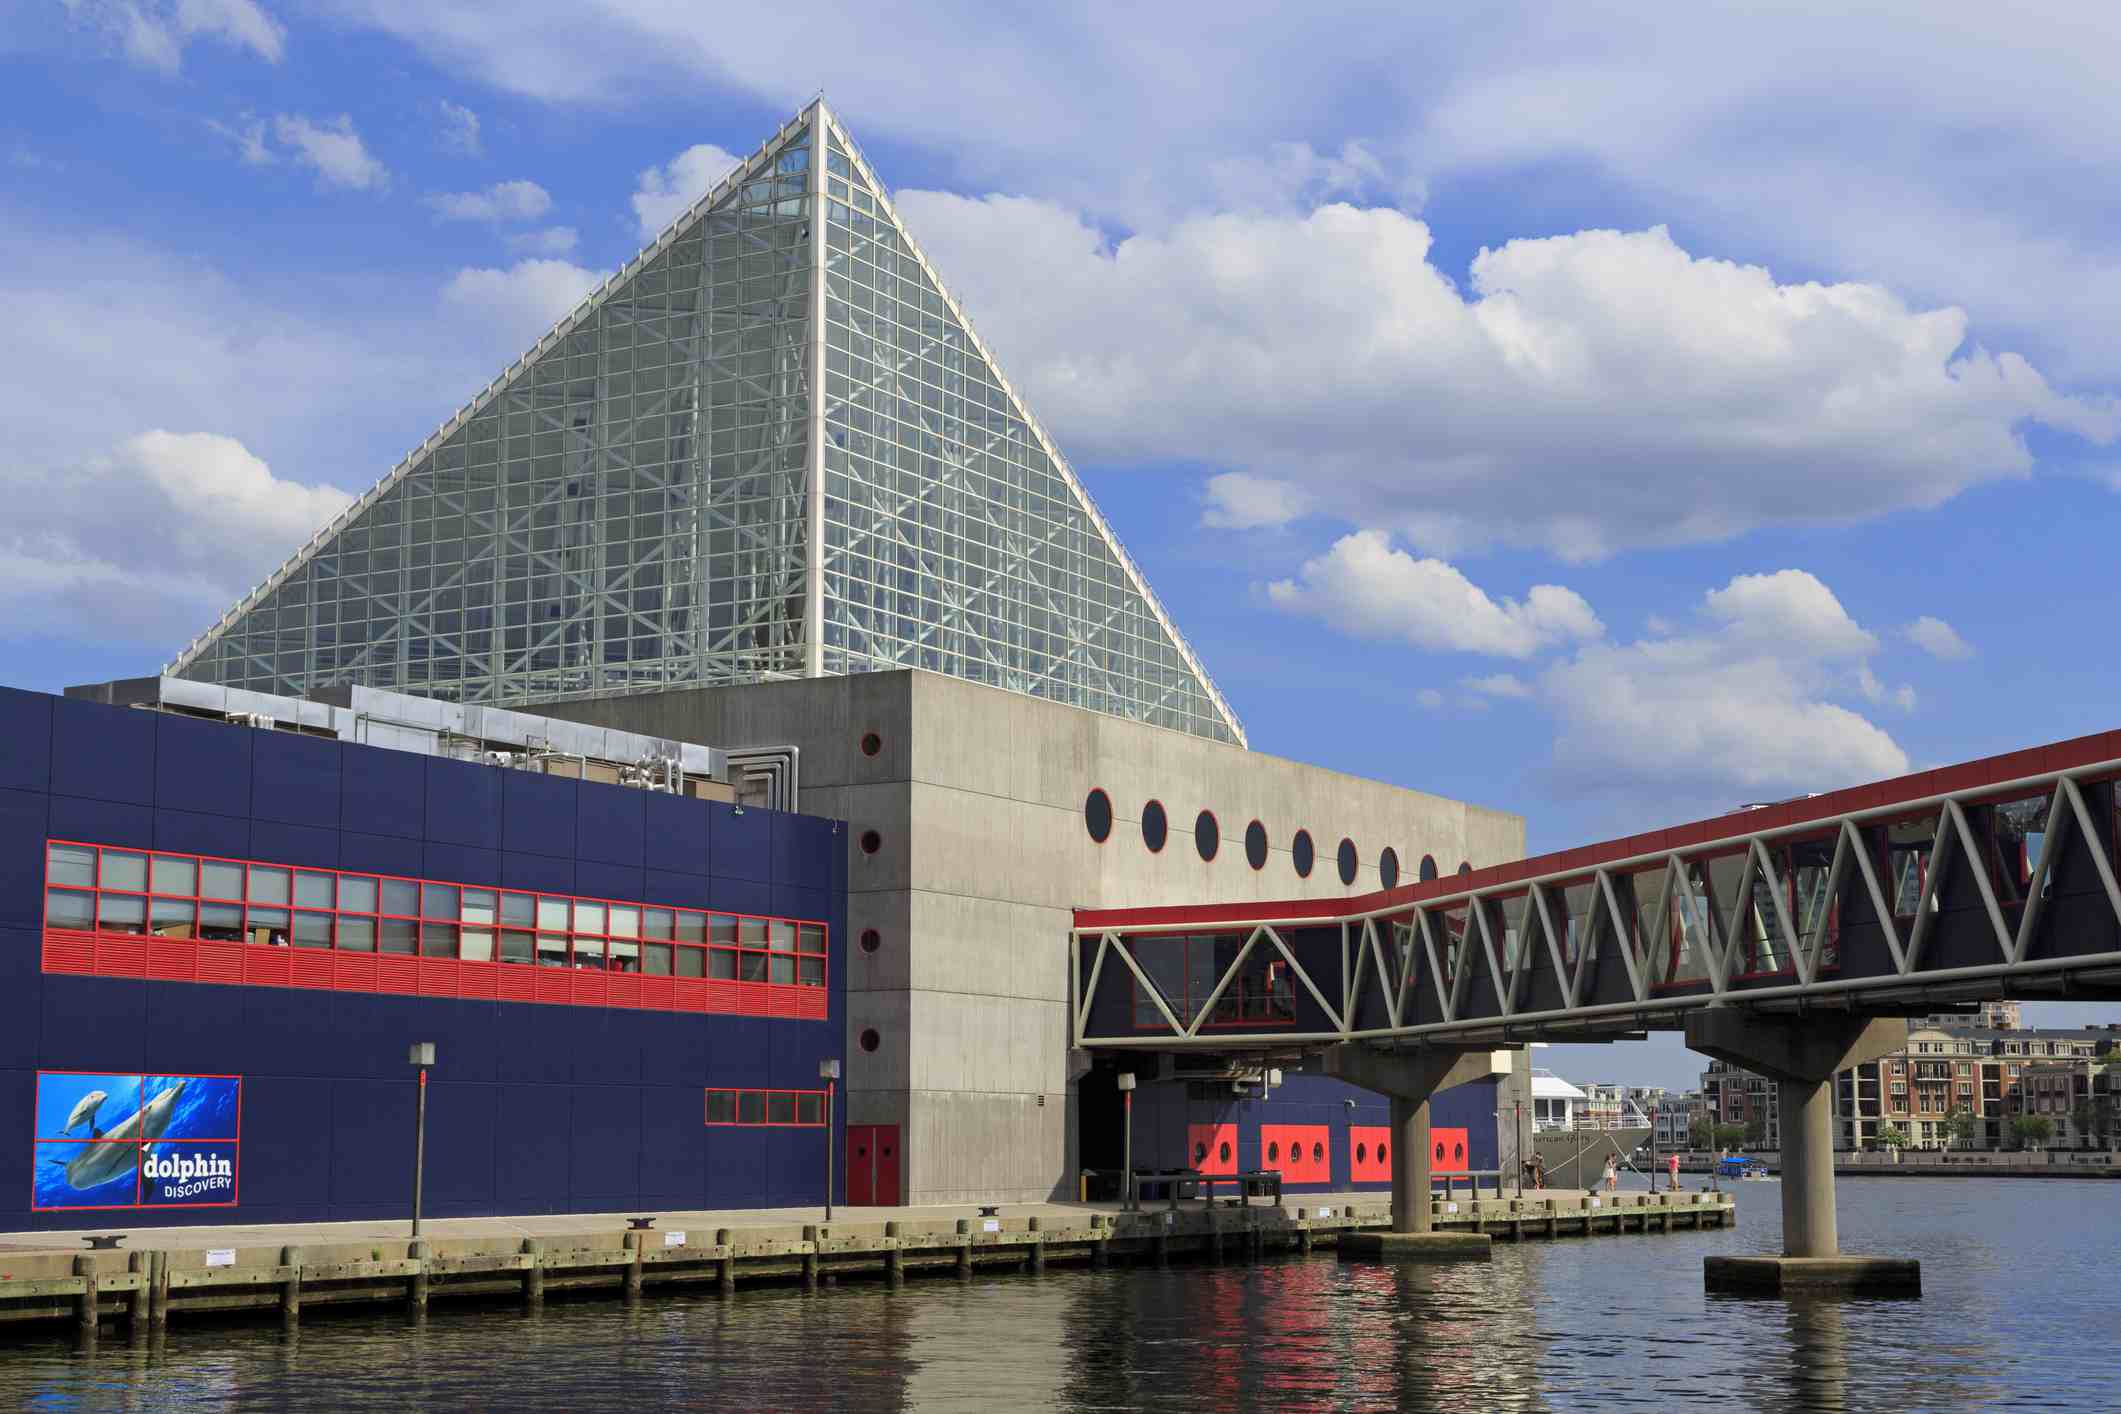 Fun Ways to Spend Time With the Family in Baltimore